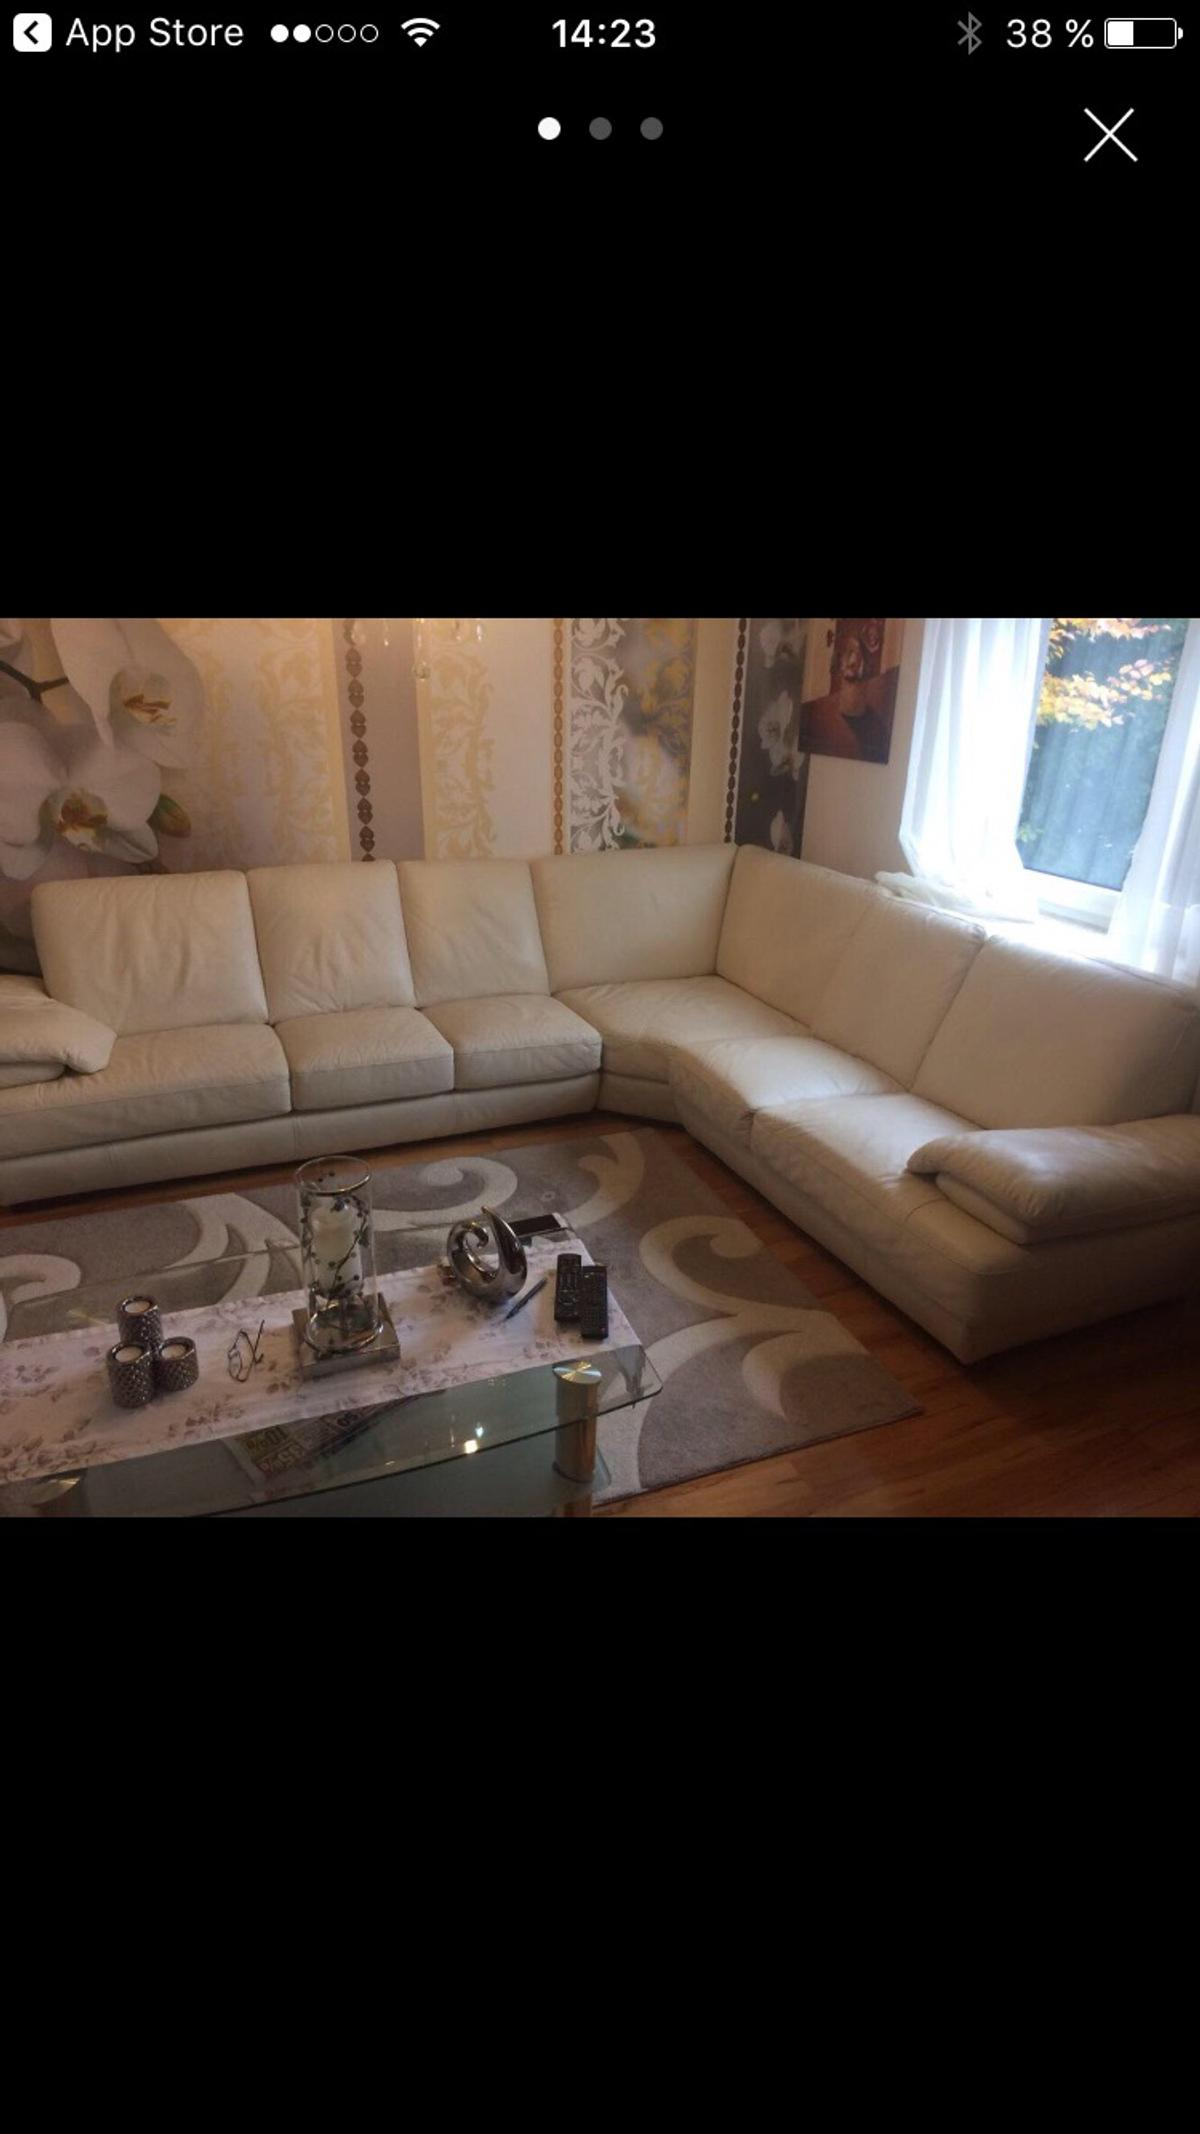 Ledercouch Beige In 56579 Rengsdorf For 200 00 For Sale Shpock